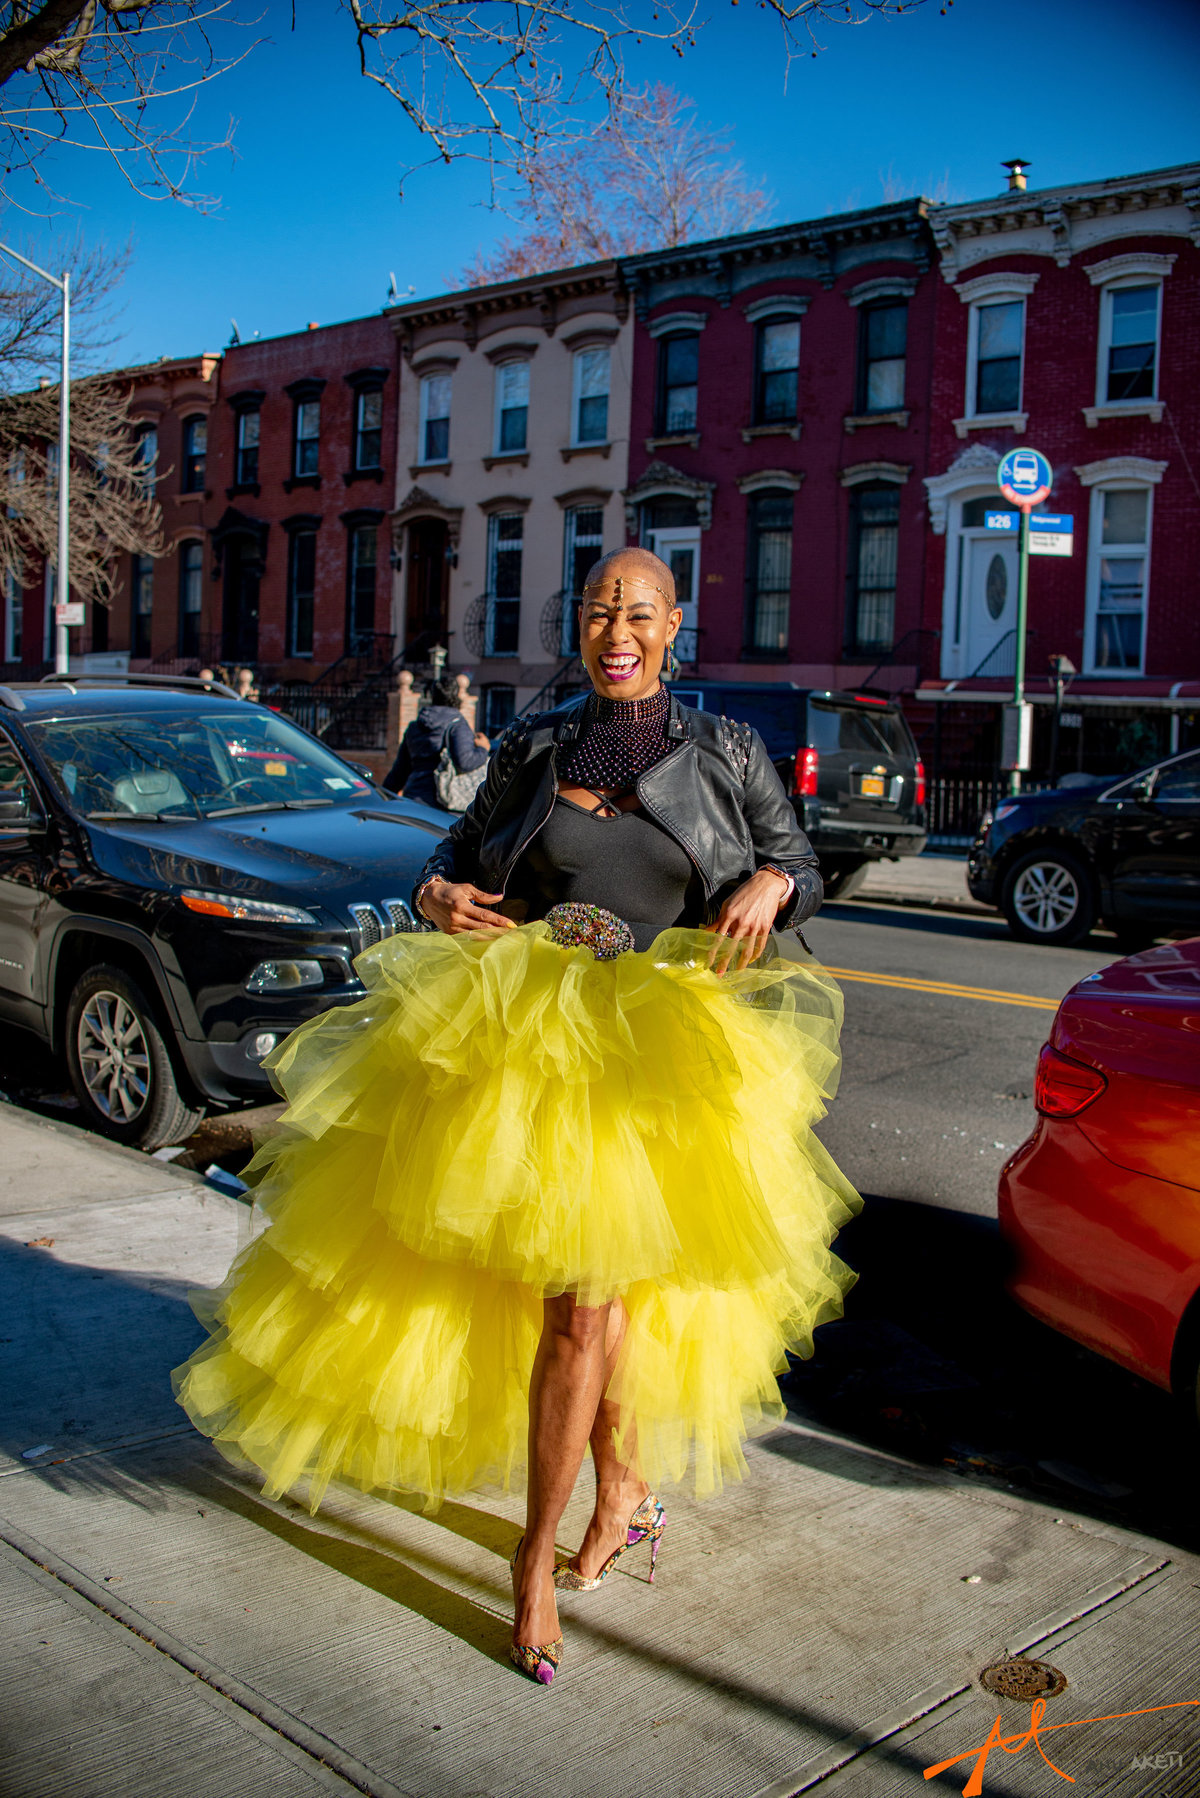 Tutus, Ties, & Tequila Themed Birthday Party held in Brooklyn New York.